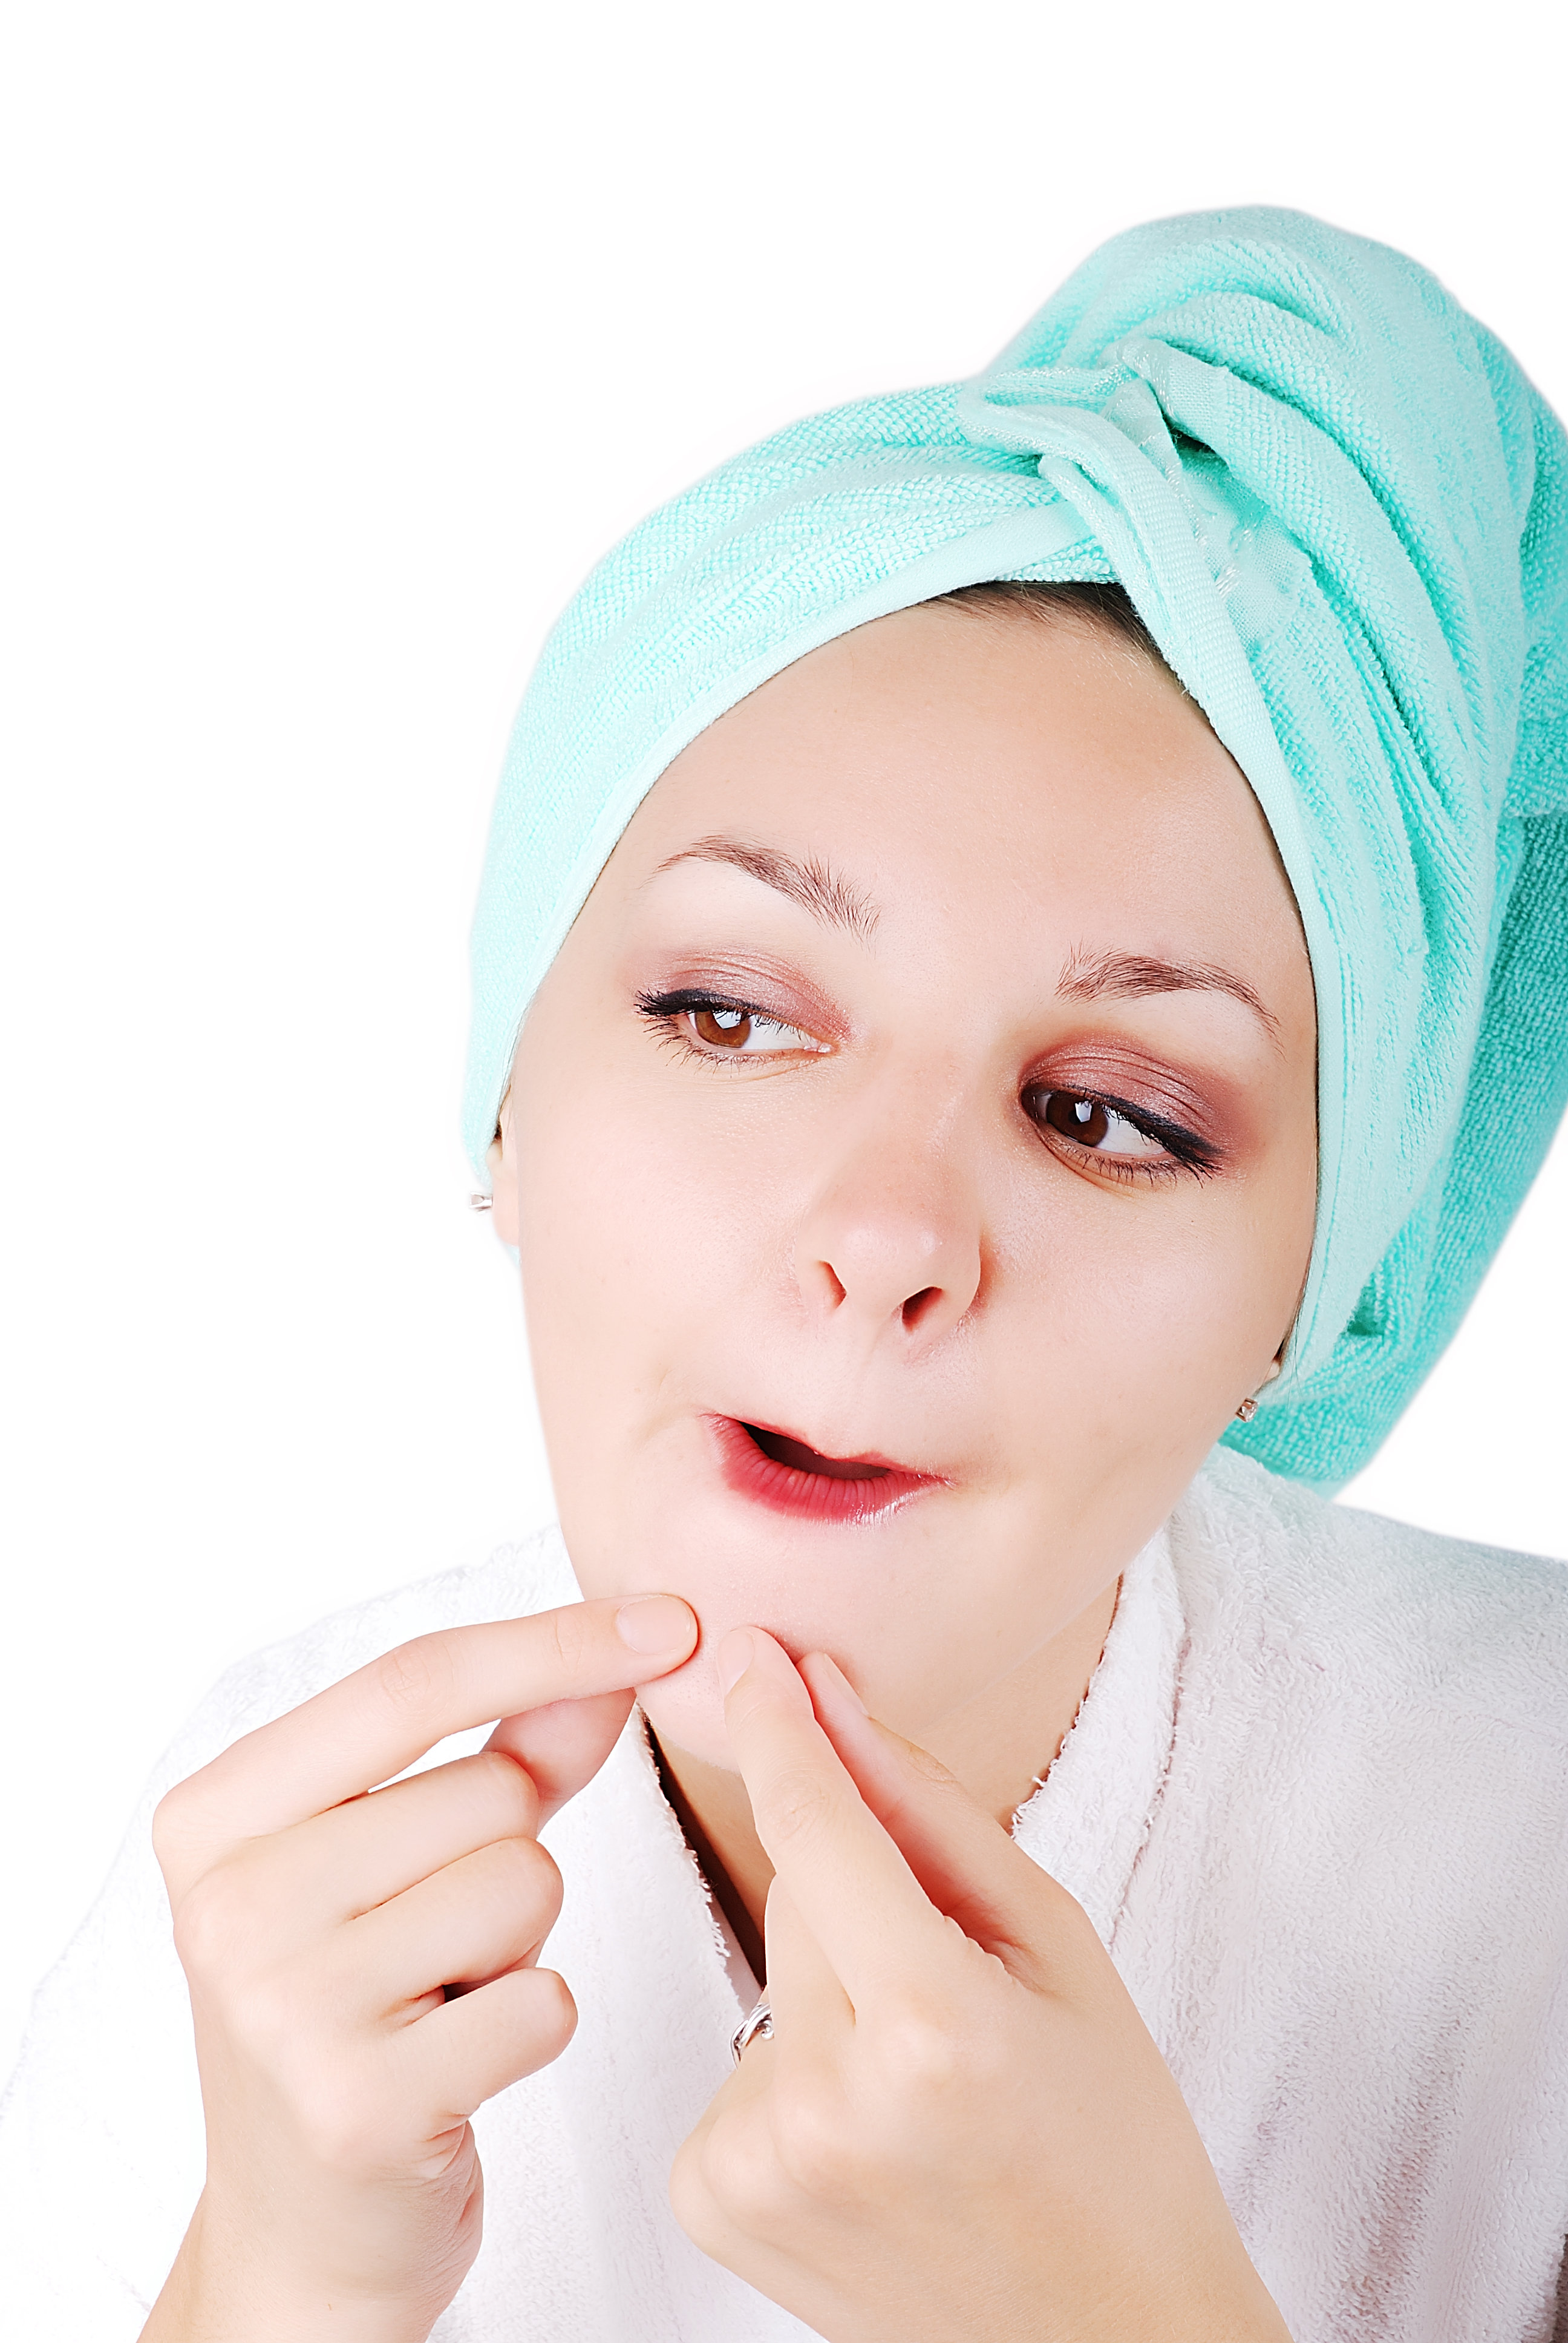 Bellavista Acne Facial with extractions & High Frequency 00006